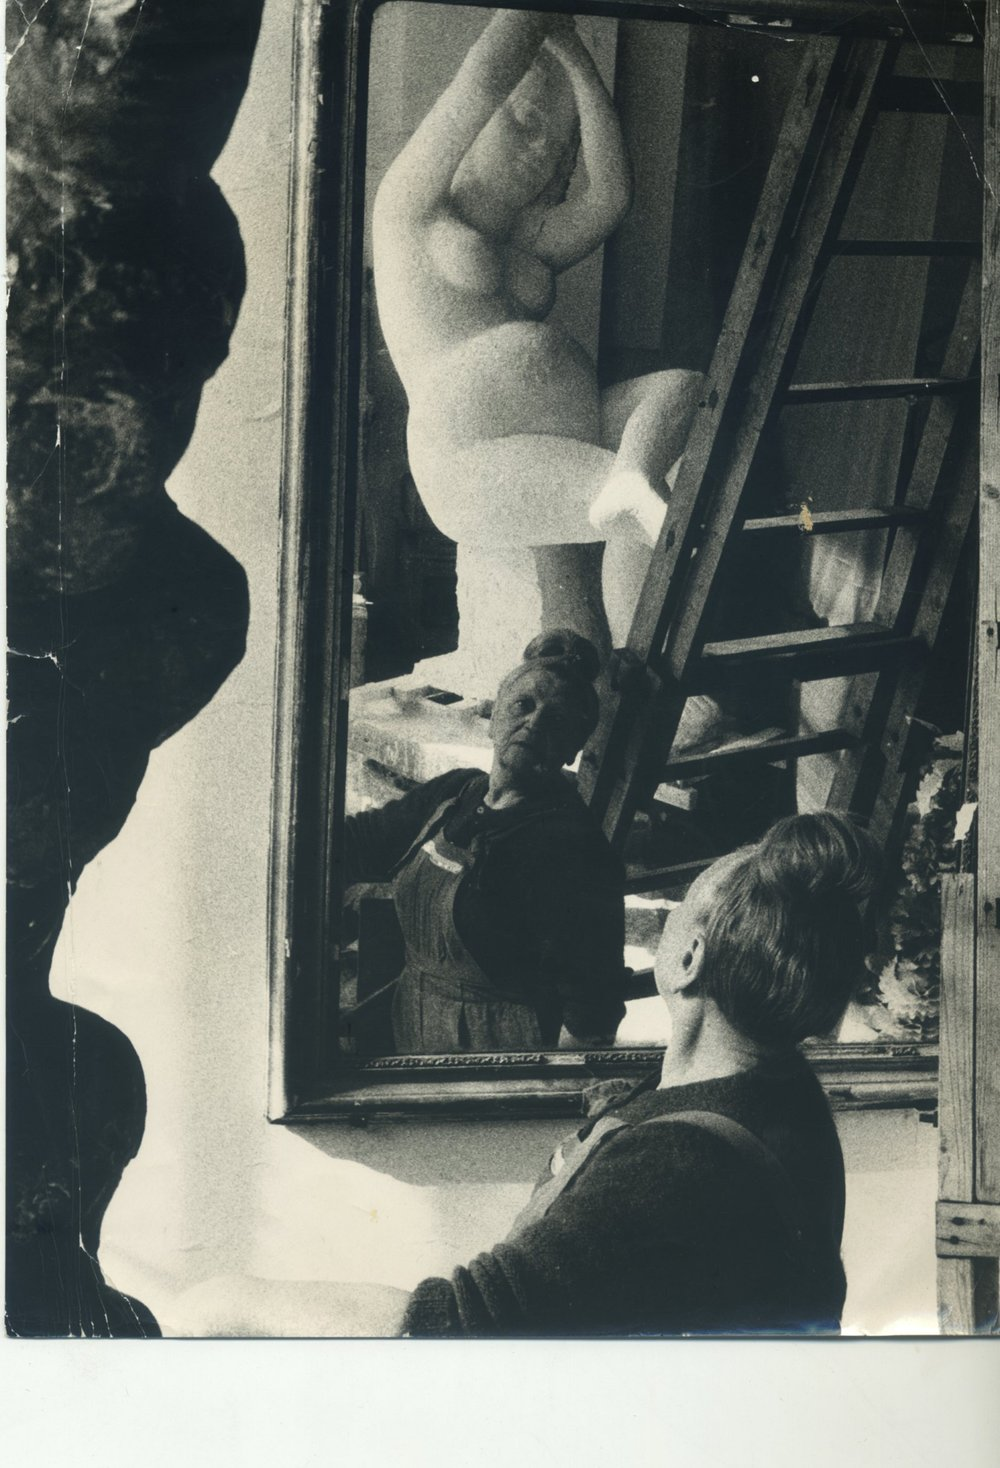 A vintage photo of Antonietta Raphael Mafai in her studio